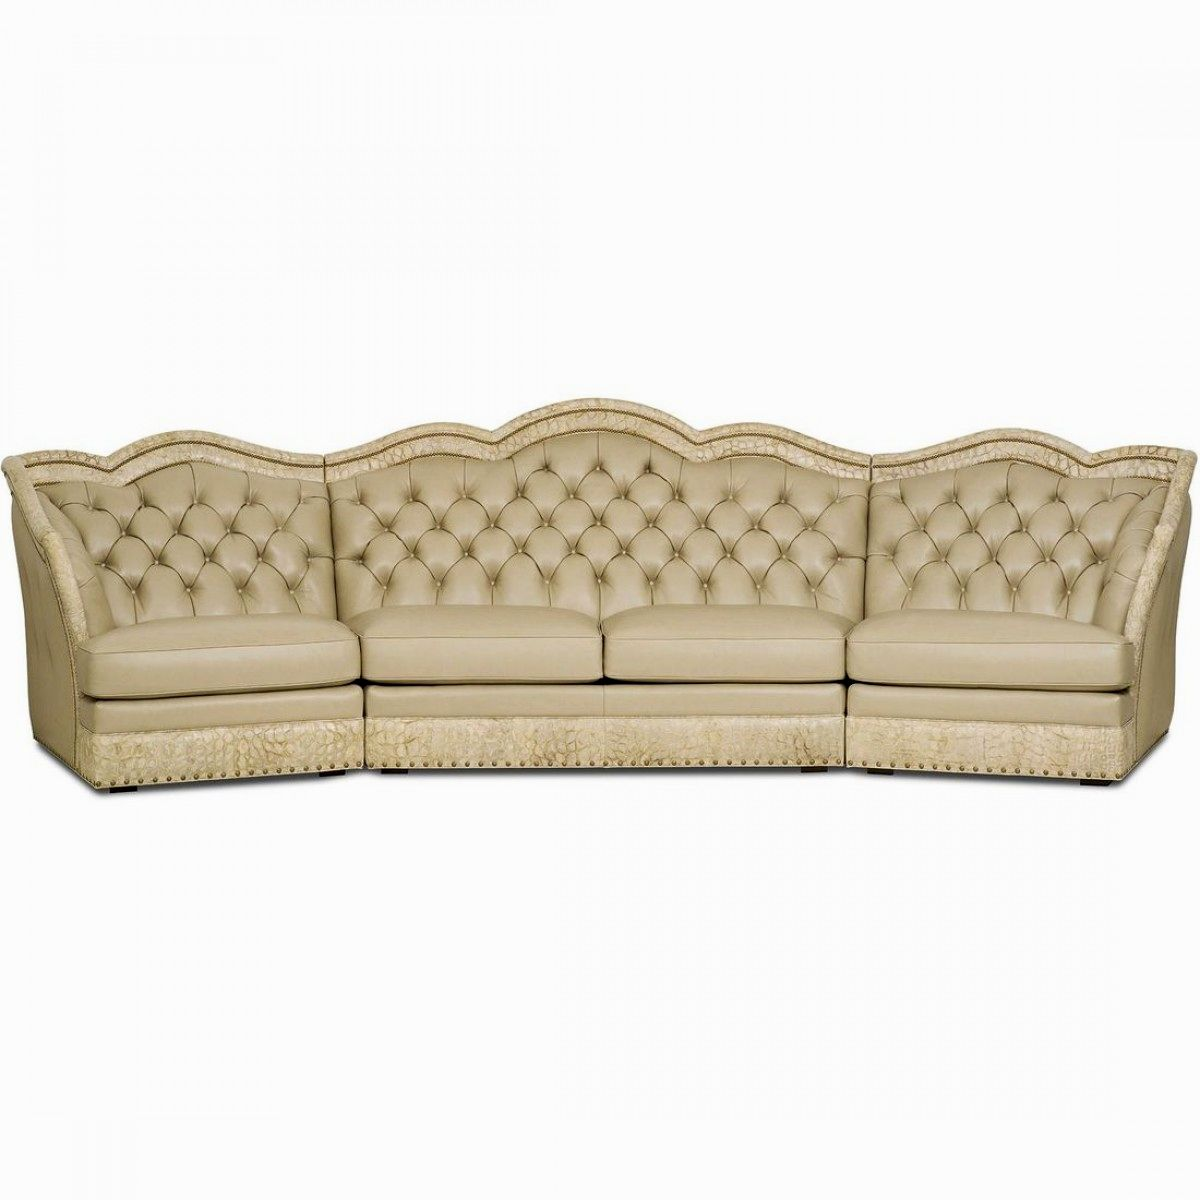 new hancock and moore sofa design-Cute Hancock and Moore sofa Photo